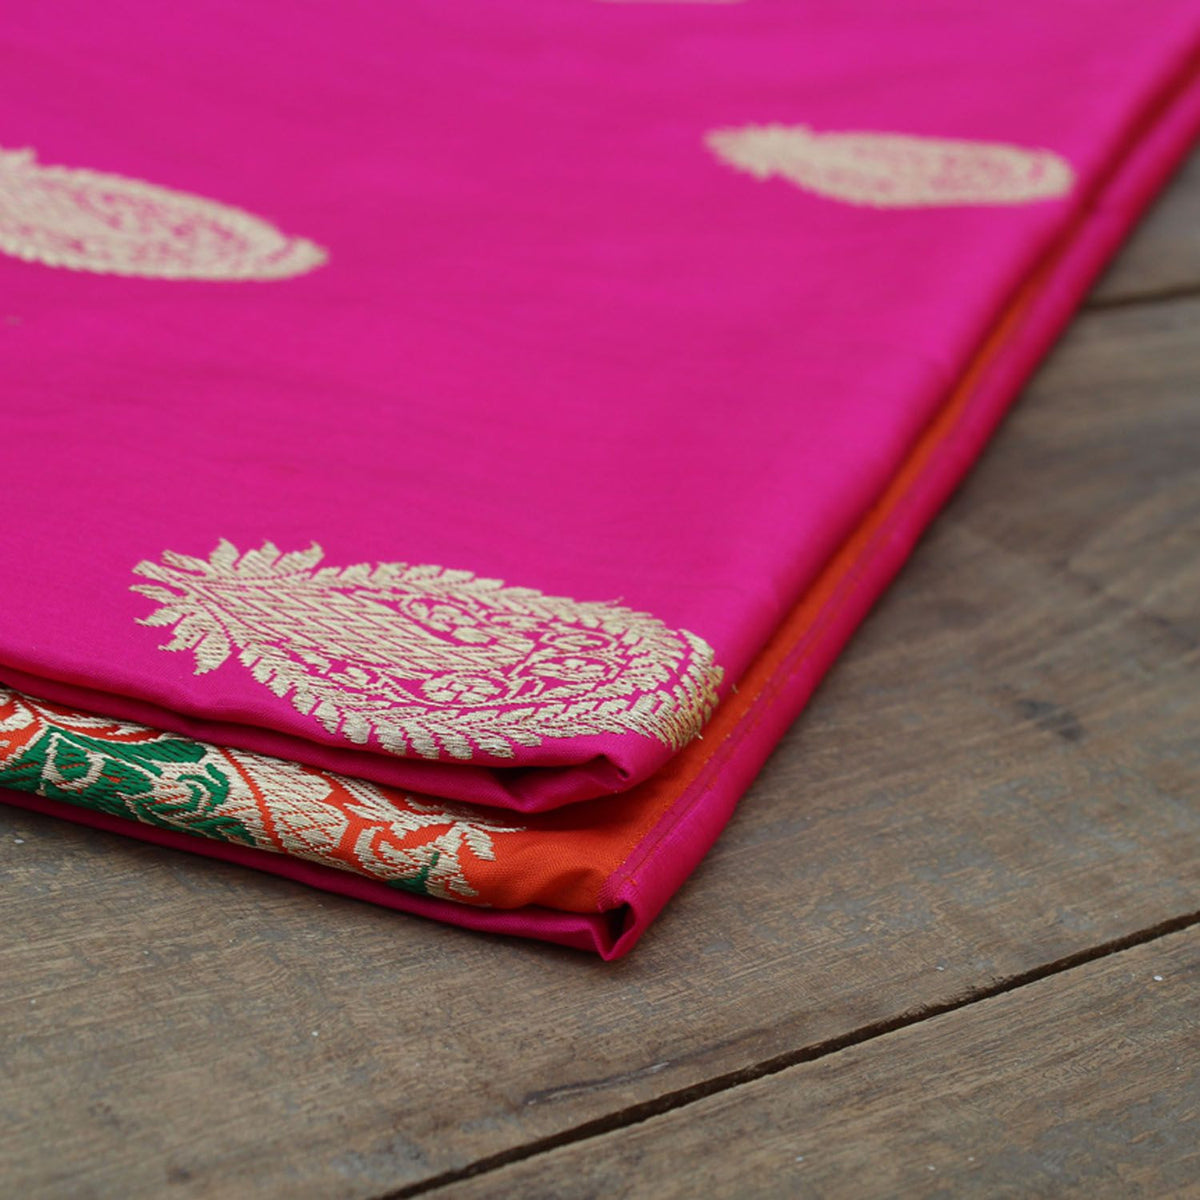 Indian Pink-Orange Pure Katan Silk Banarasi Handloom Saree - Tilfi - 4